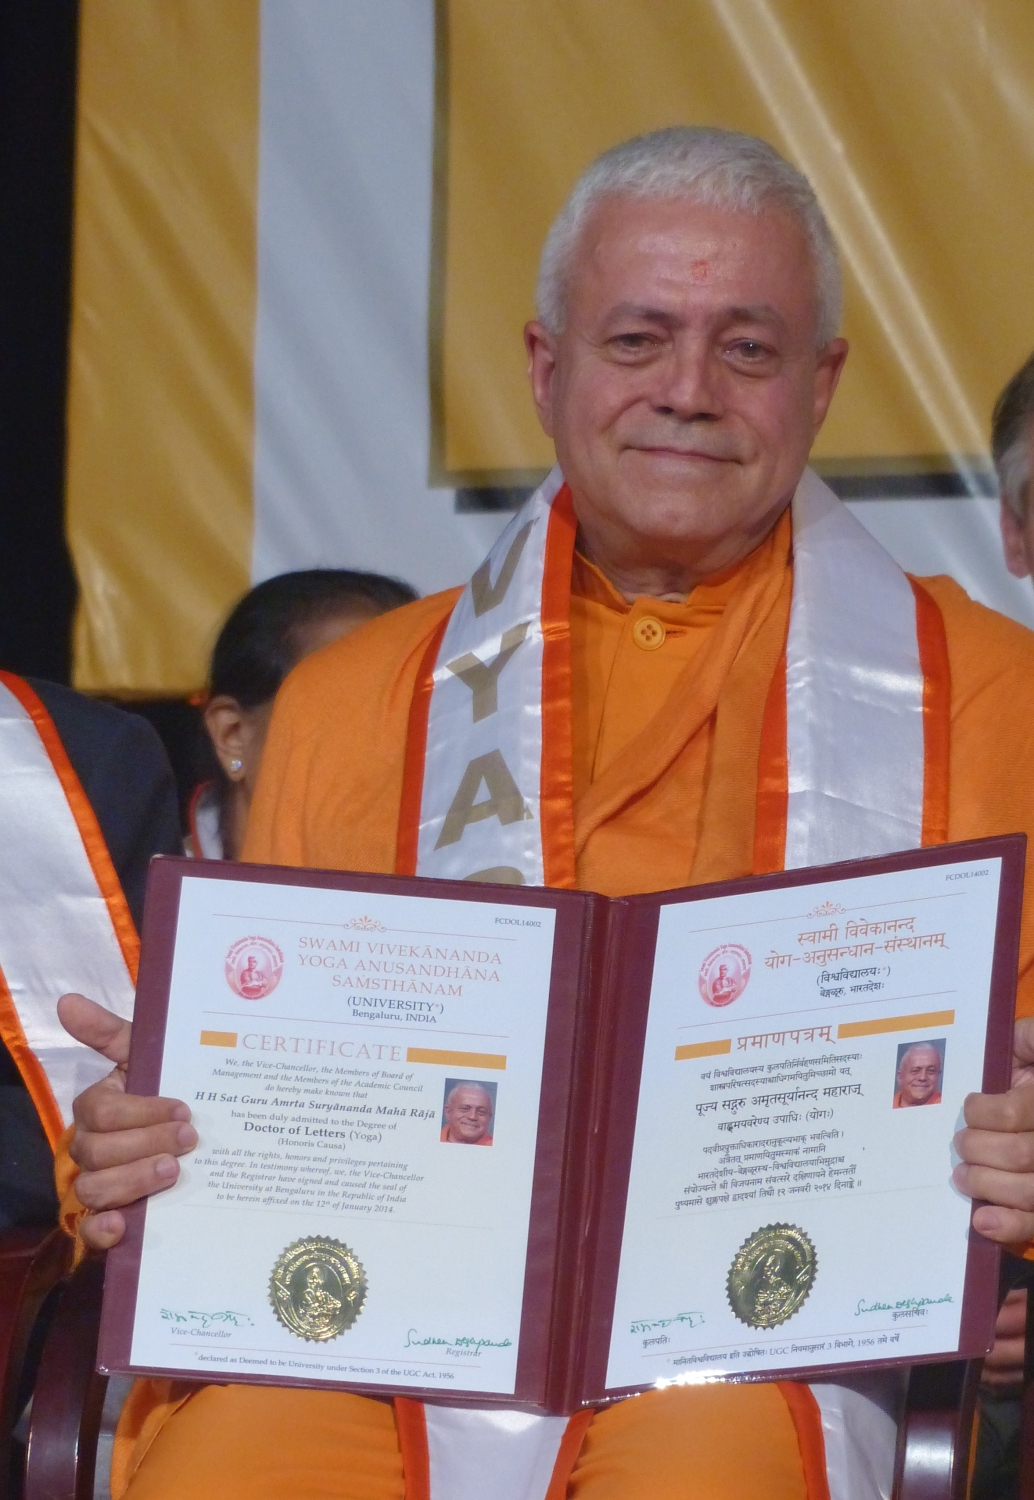 H.H. Jagat Guru Amrta Súryánanda Mahá Rája - Honorary Doctorate - University of Bengaluru, S-Vyása - 2014, January, 12th